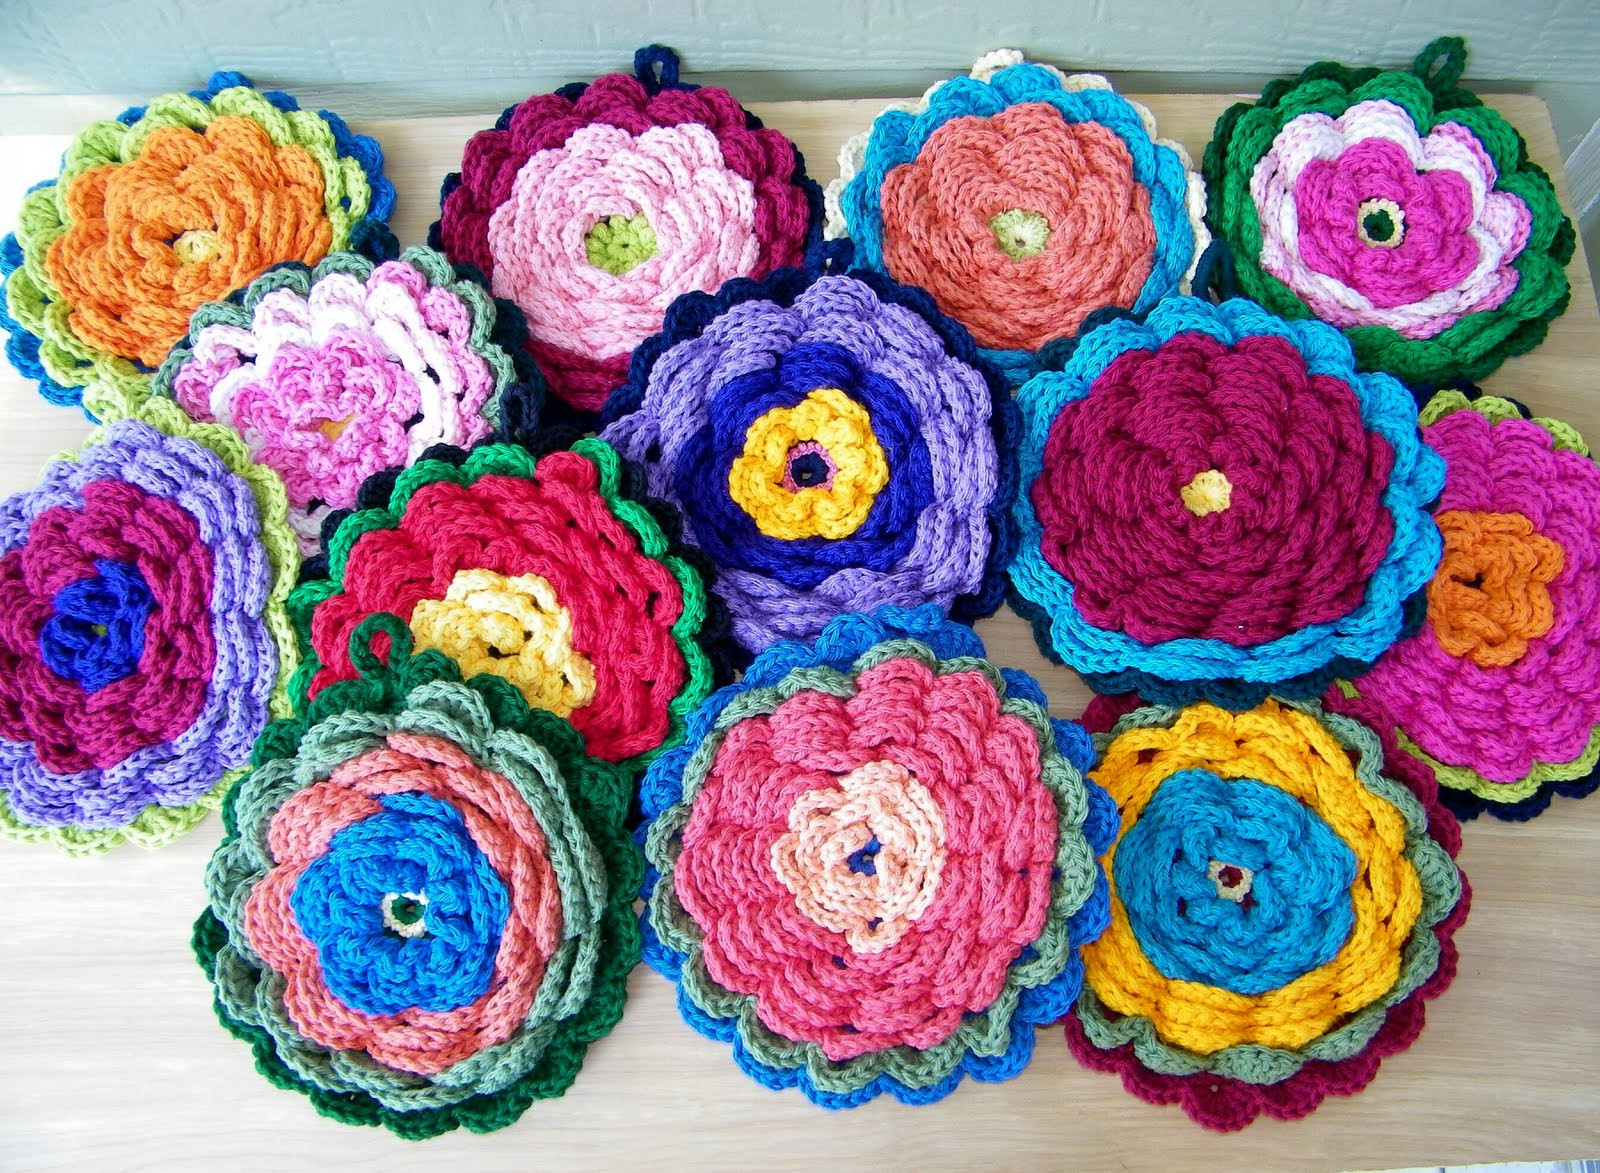 Crochet Potholder Pattern Fresh Delights Gems Fanciful Flower Potholders Of Amazing 43 Pictures Crochet Potholder Pattern